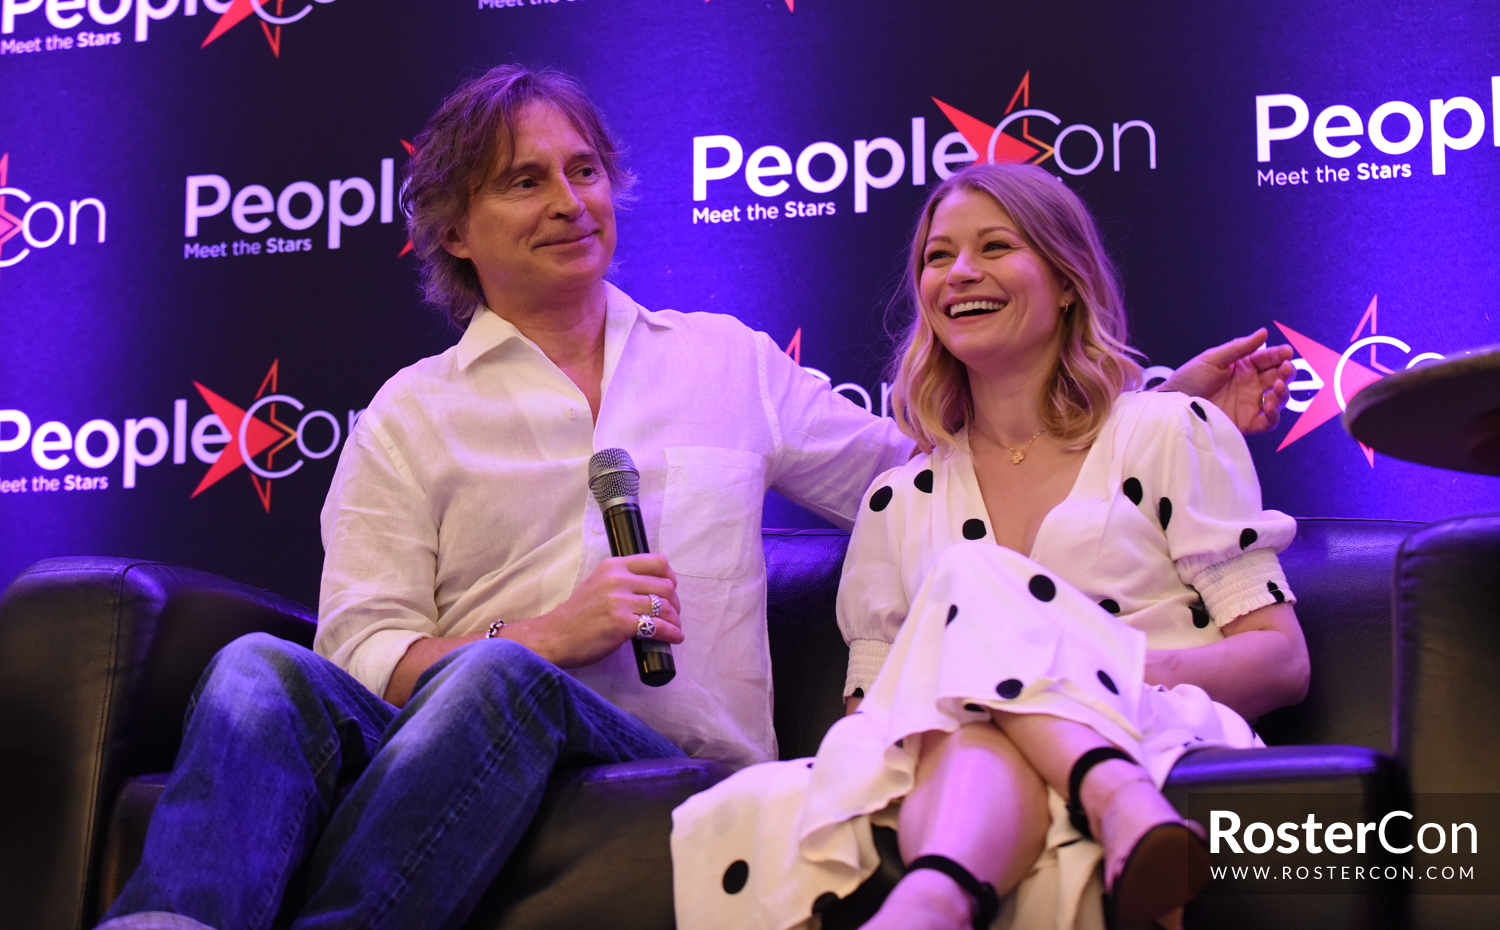 Robert Carlyle & Emilie de Ravin - Once Upon A Time - The Happy Ending  Convention